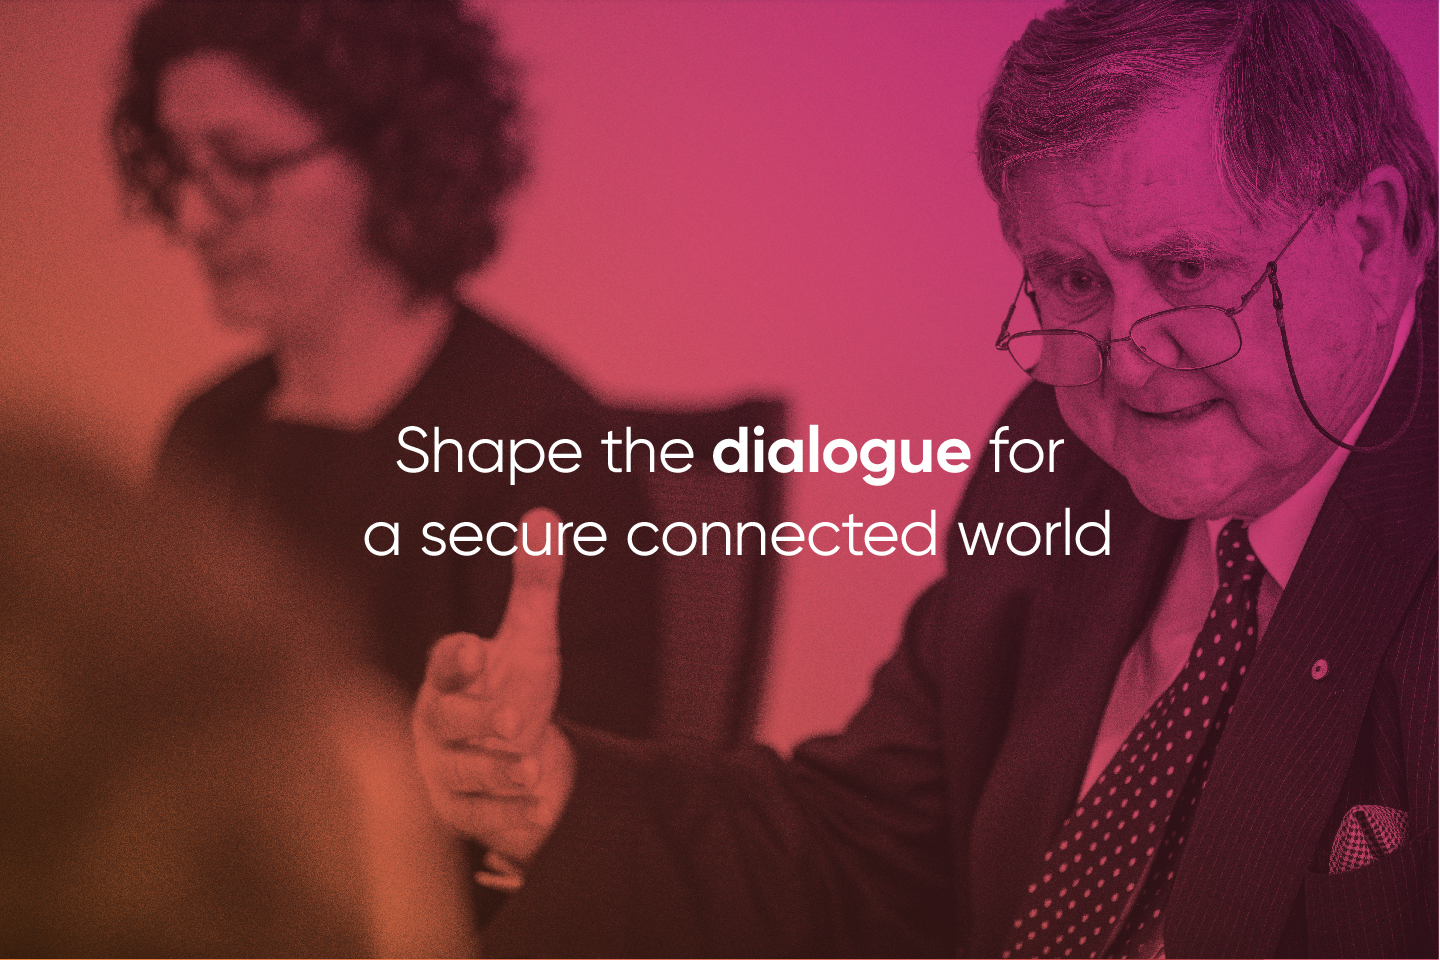 Shape the dialogue for a secure connected world